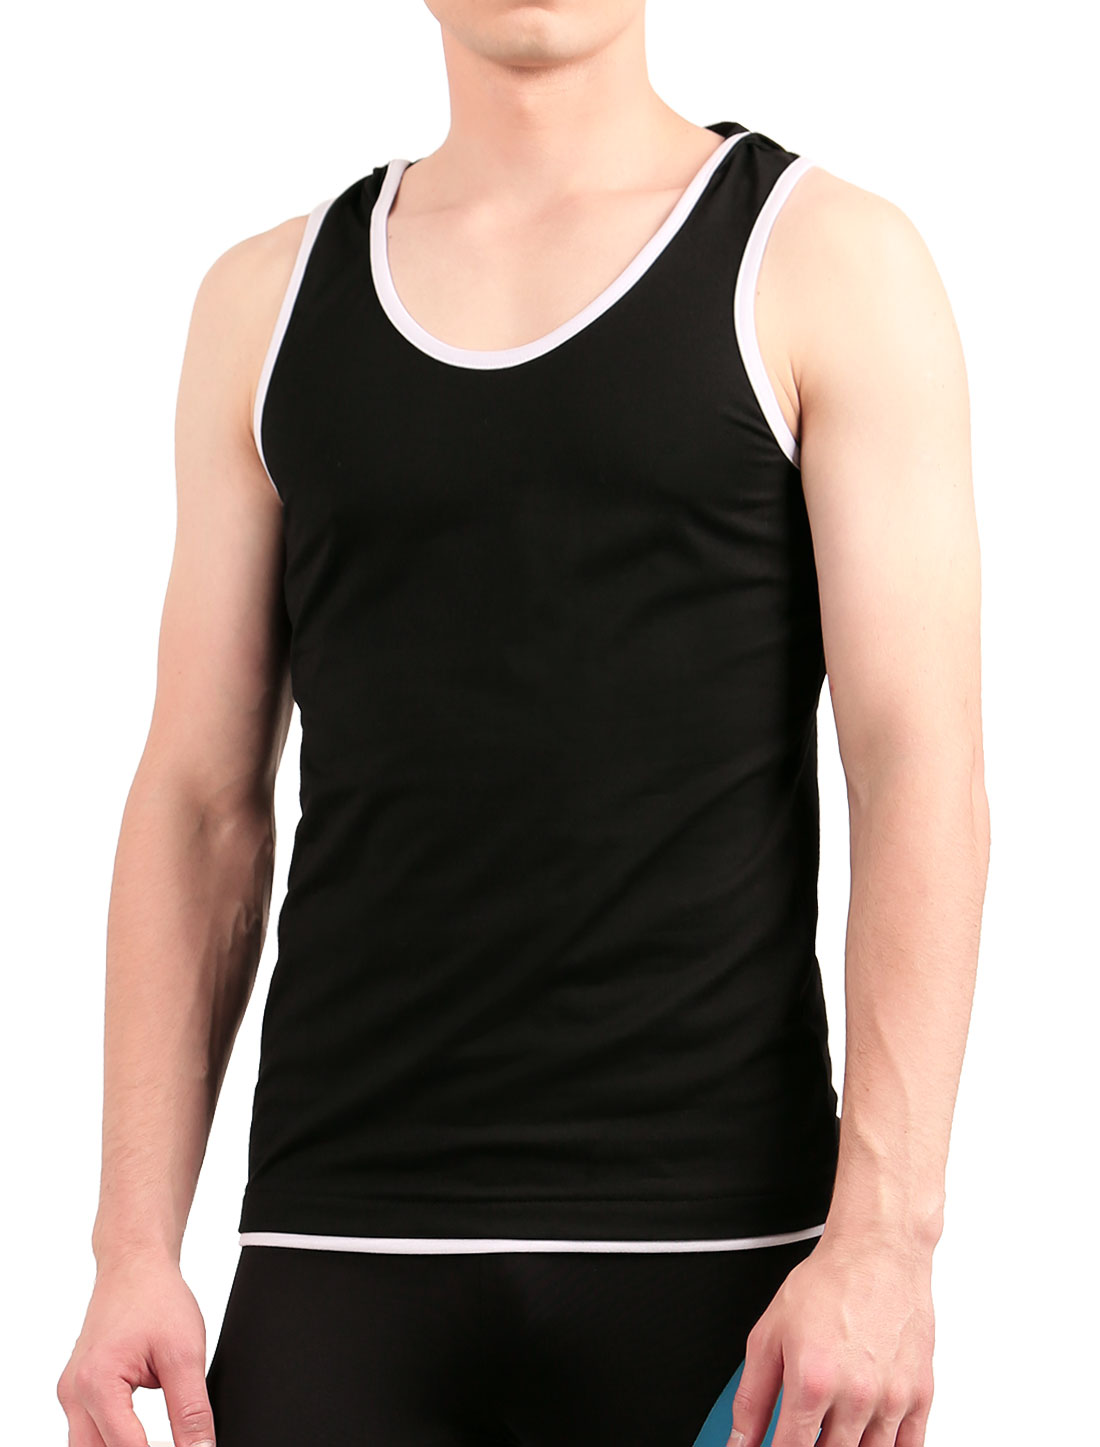 Men Black Sleeveless Racerback Pullover Design Stretch Hoodie Shirt M